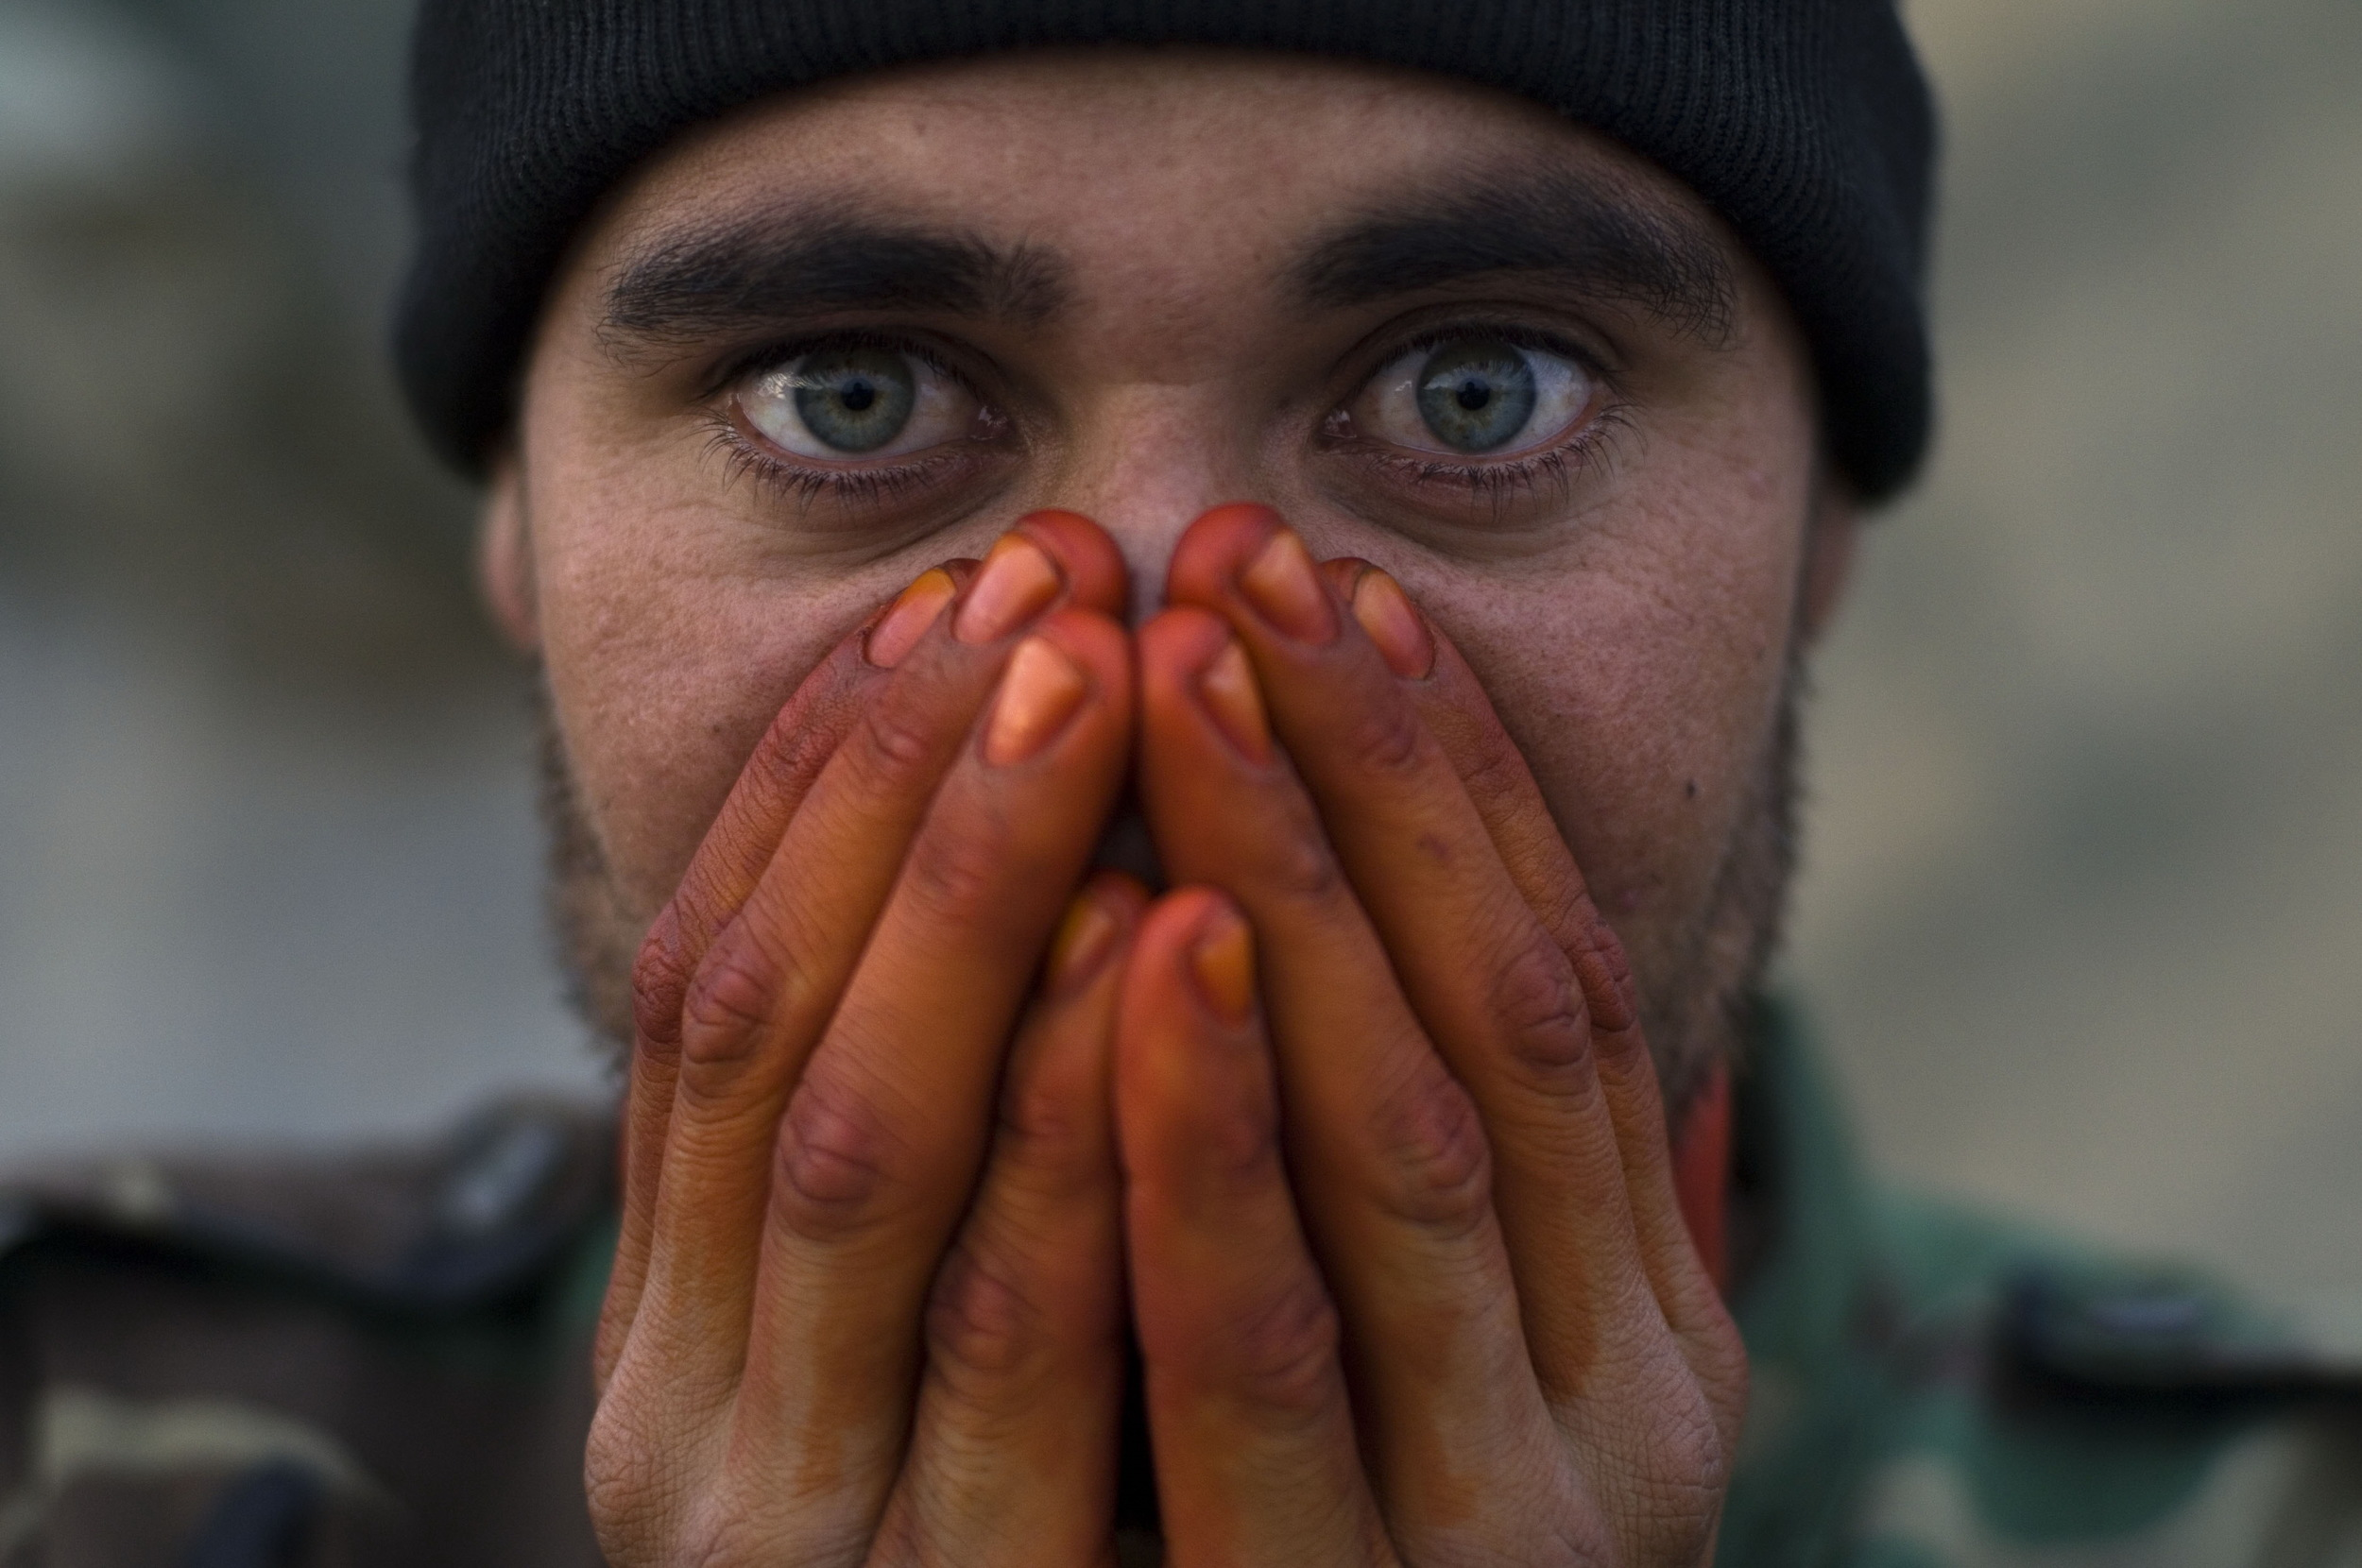 An Afghan National Army (ANA) soldier seen warming his henna stained hands from EID worship on the front lines in Zhari District, Afghanistan.December 18, 2007. ©Louie Palu/ZUMAPRESS.com